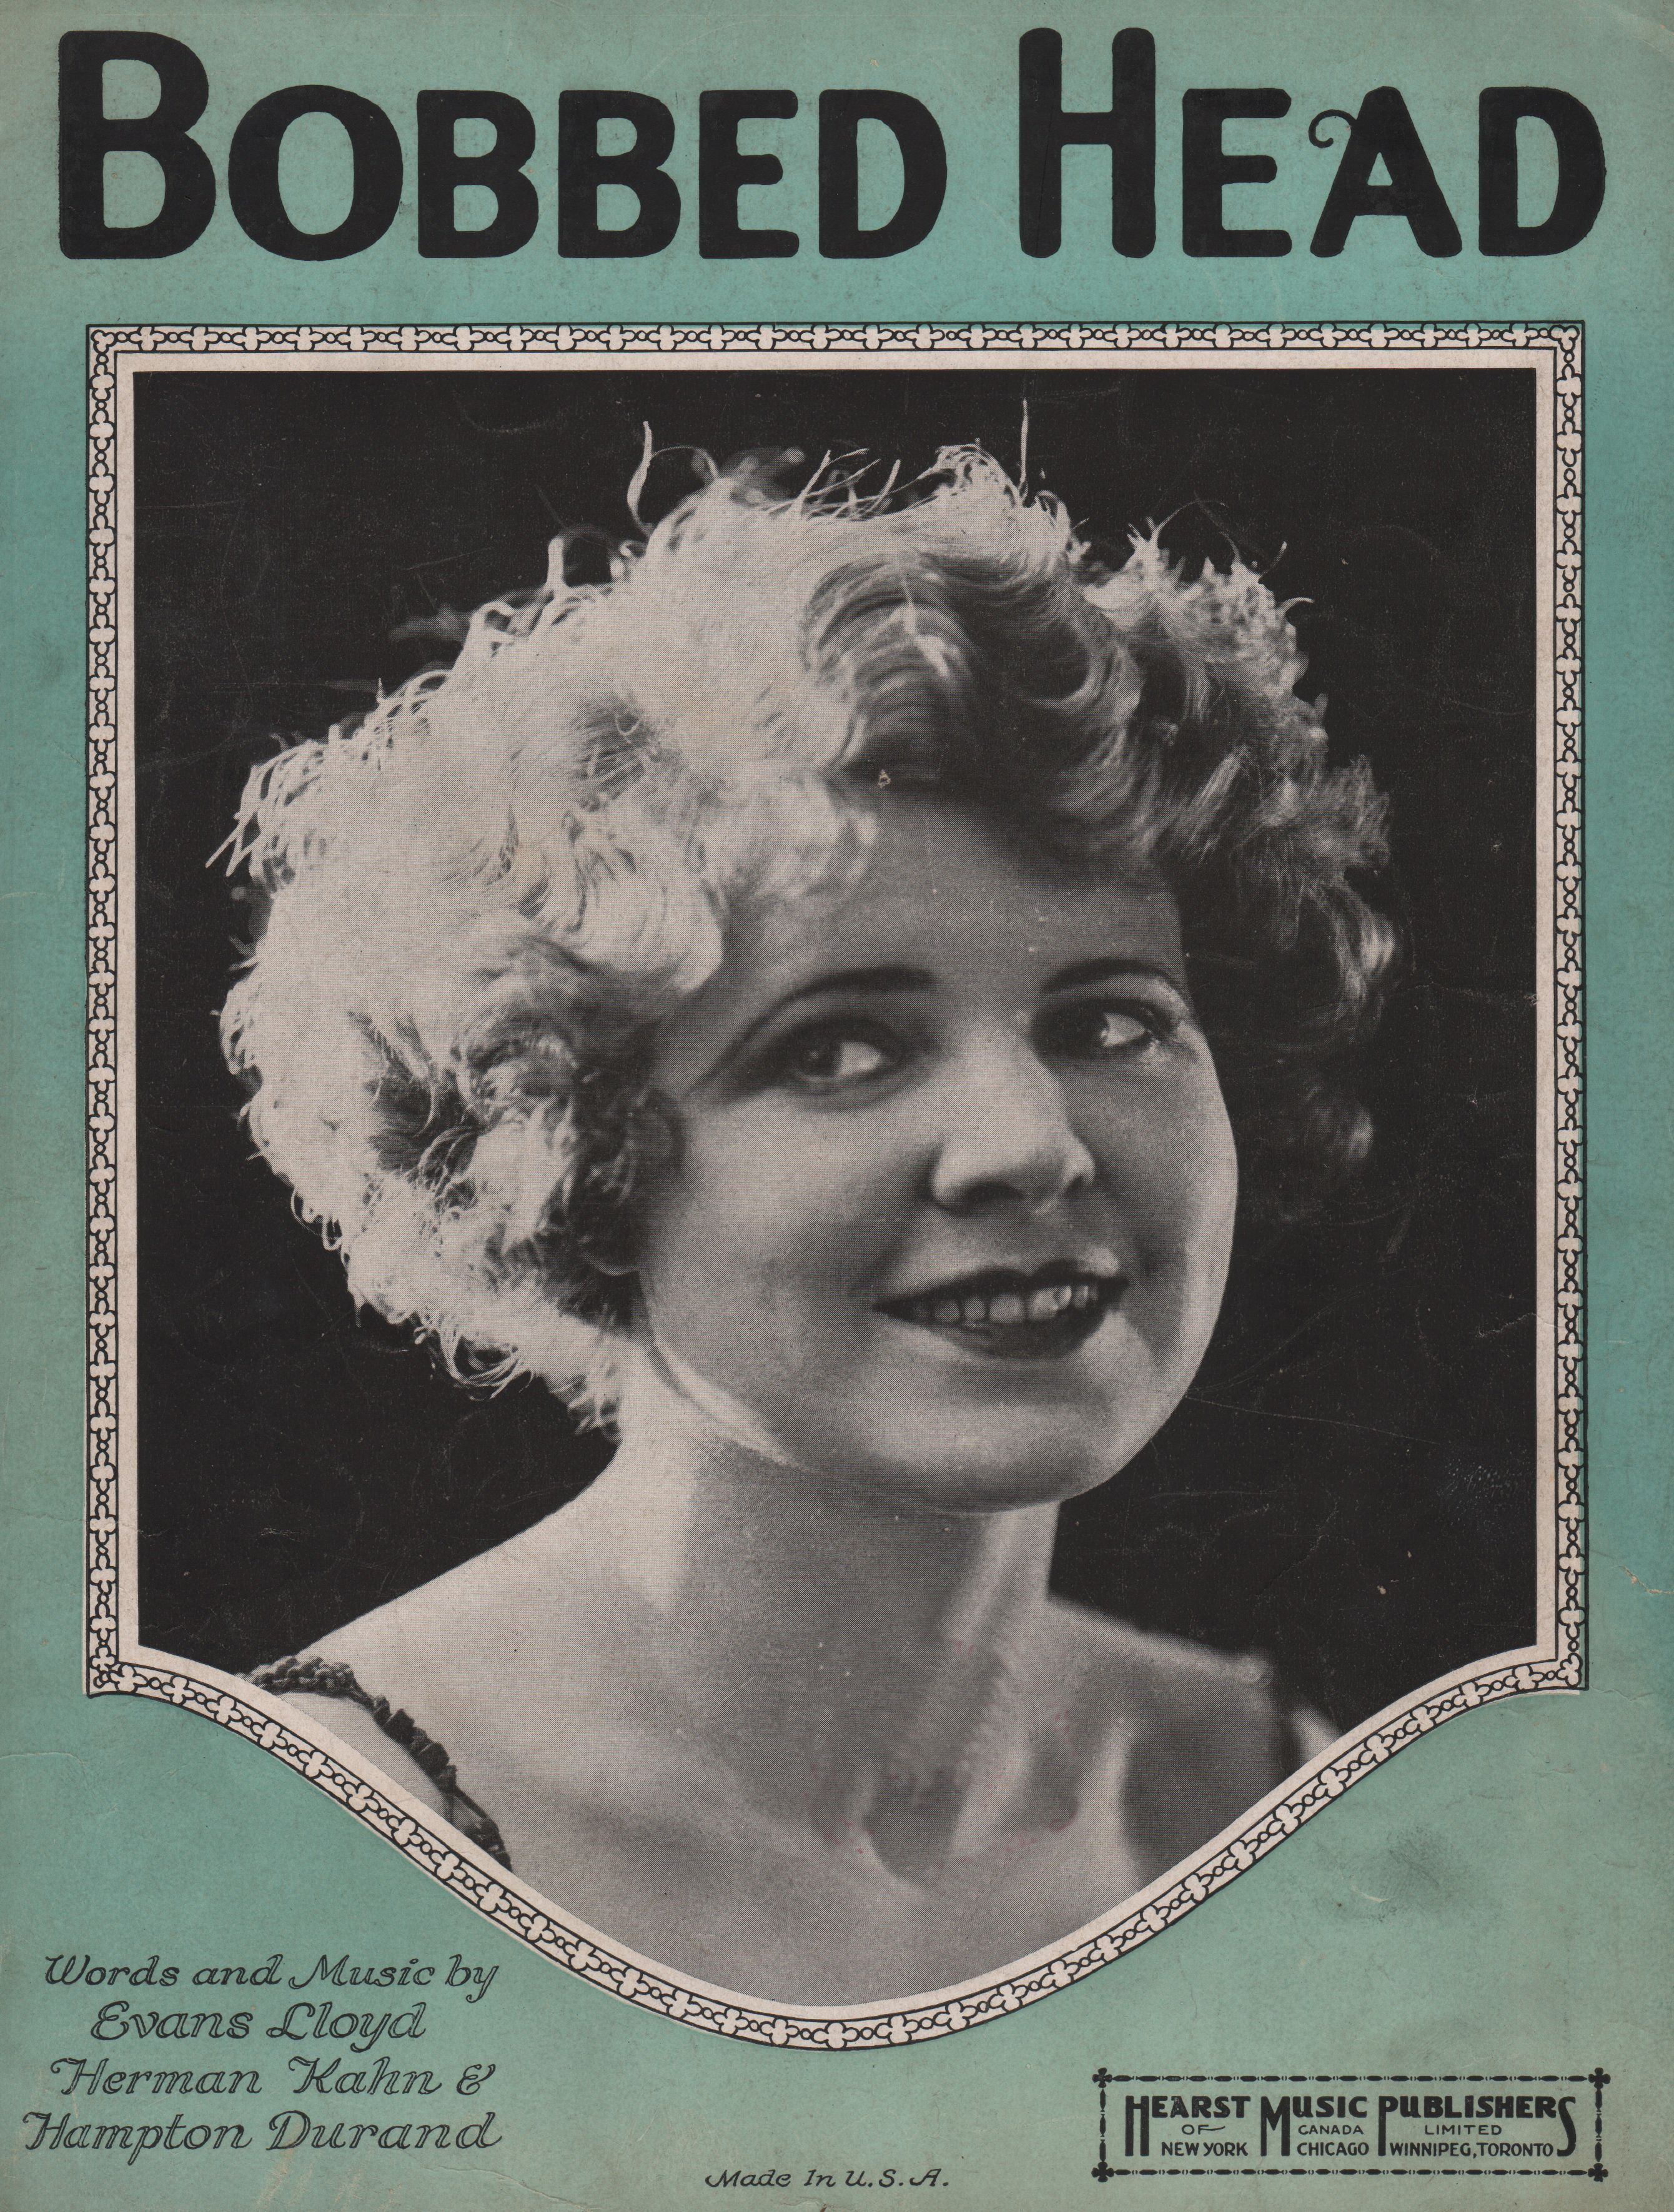 new woman of the 1920s: debating bobbed-hair from history